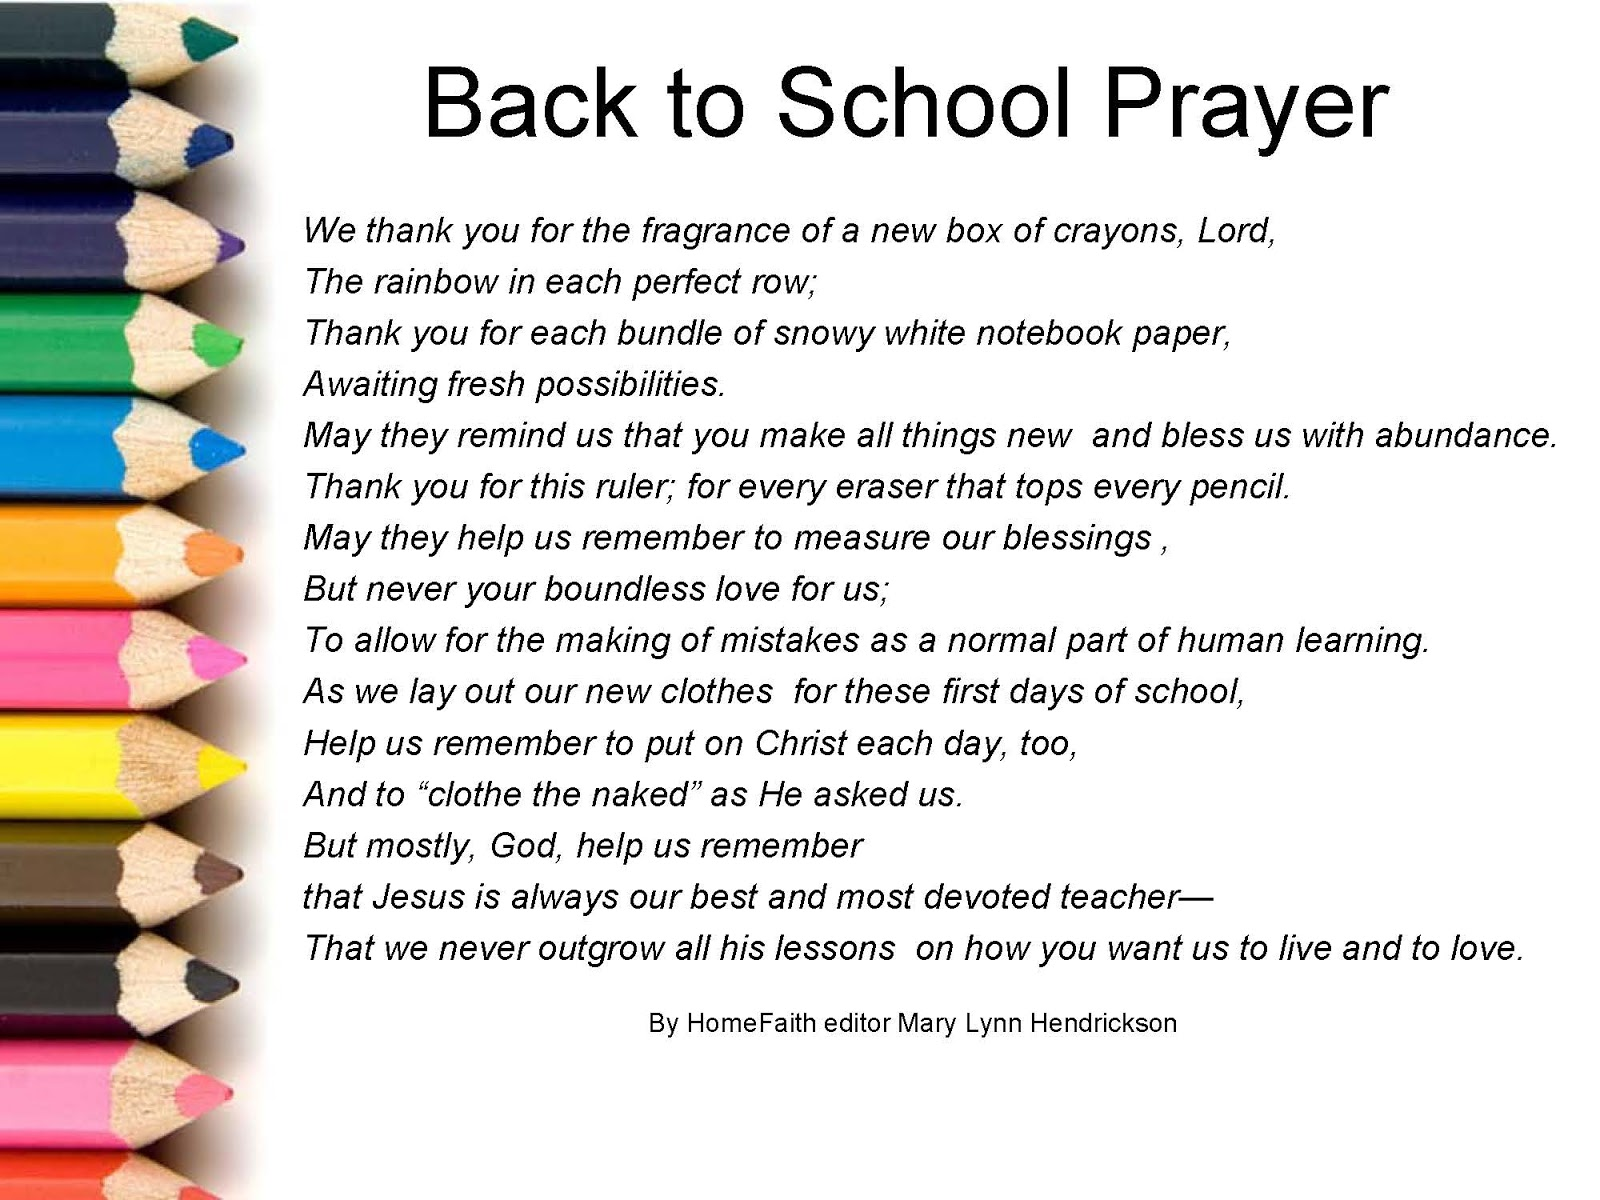 prayer in school The internet's best and most definitive collection of free christian and catholic prayers for teachers, students, schools, and classrooms.